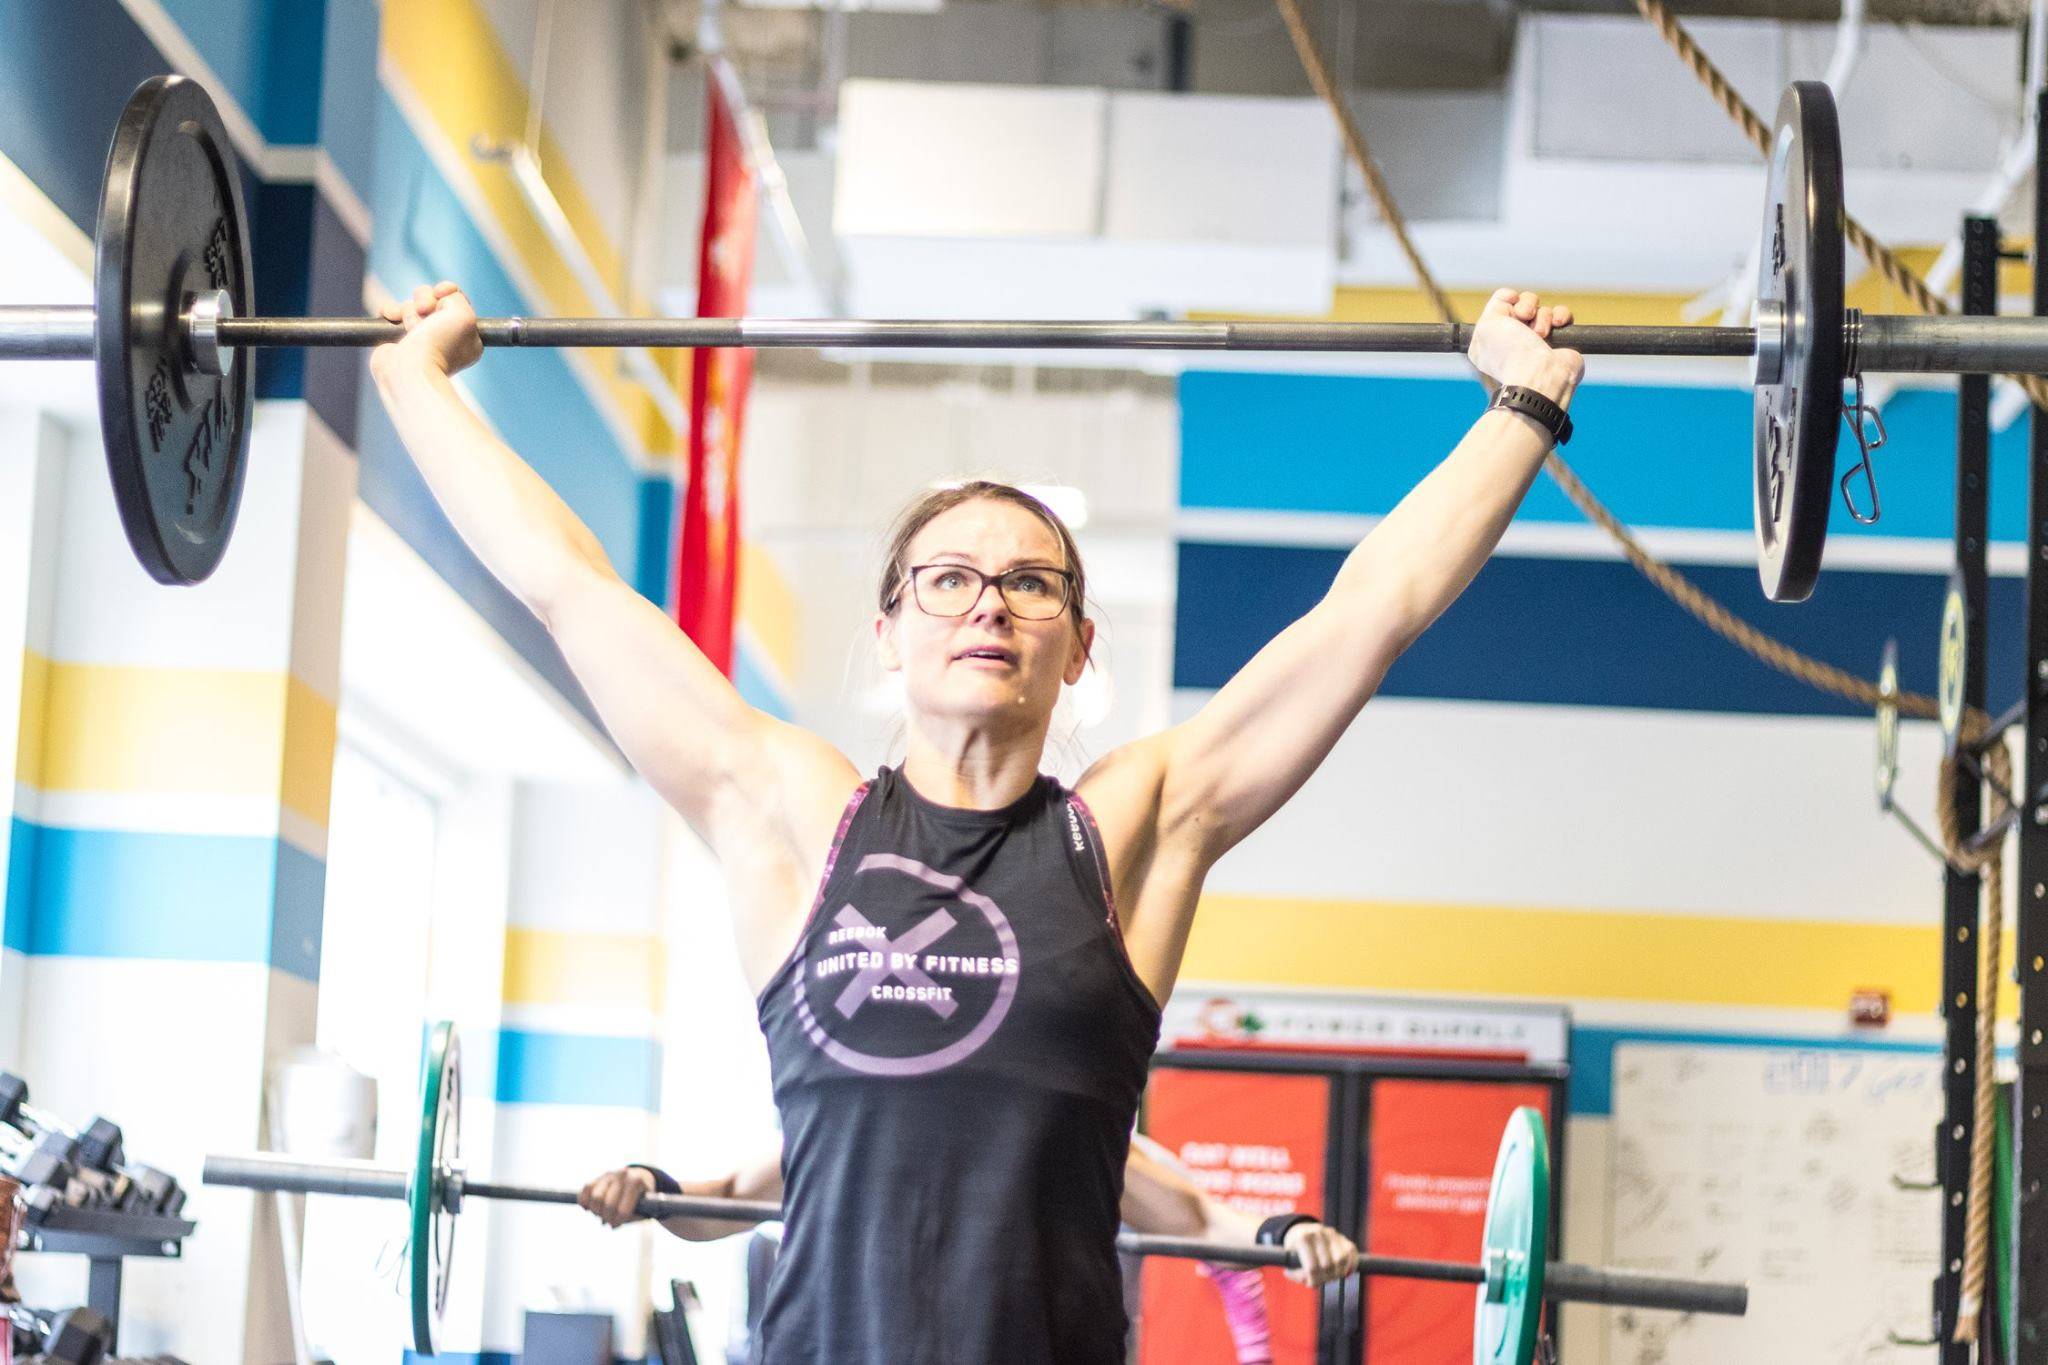 Vilija TeelCoach - CrossFit level 1 trainer2019 crossfit games - individual2019 fittest woman in lithuania